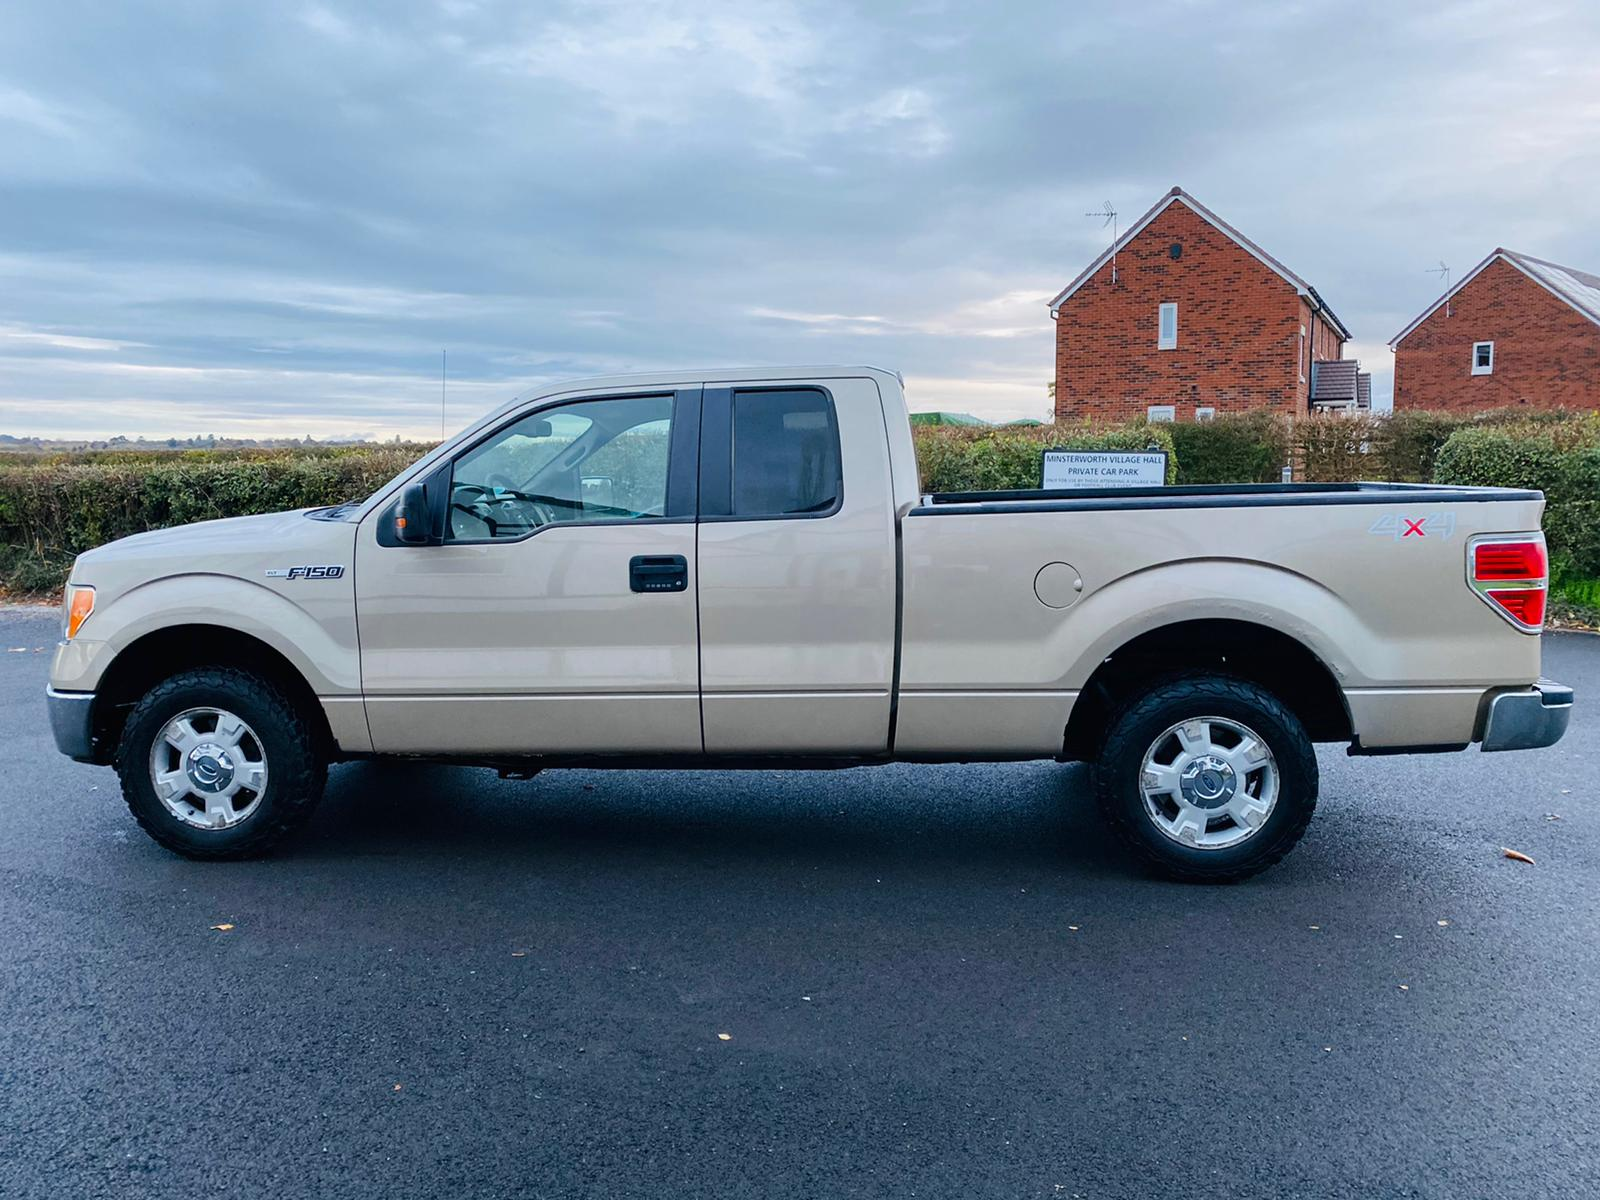 (RESERVE MET) Ford F-150 XLT 4.6L V8 Supercab - 2010 Year - 6 Seats - Fresh Imports - Image 13 of 39